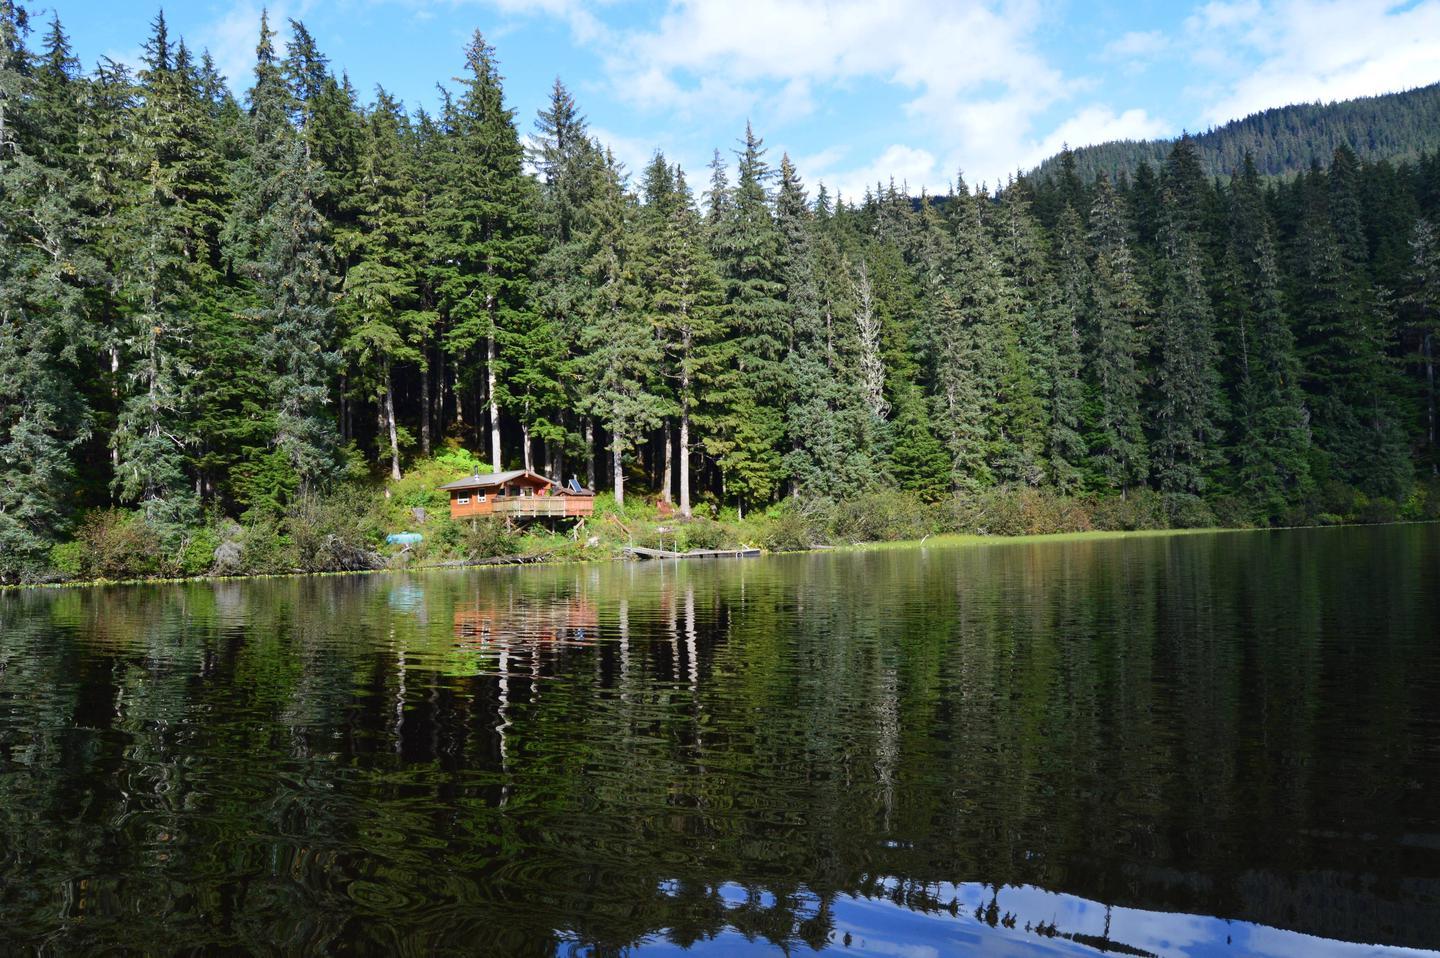 View from the lake